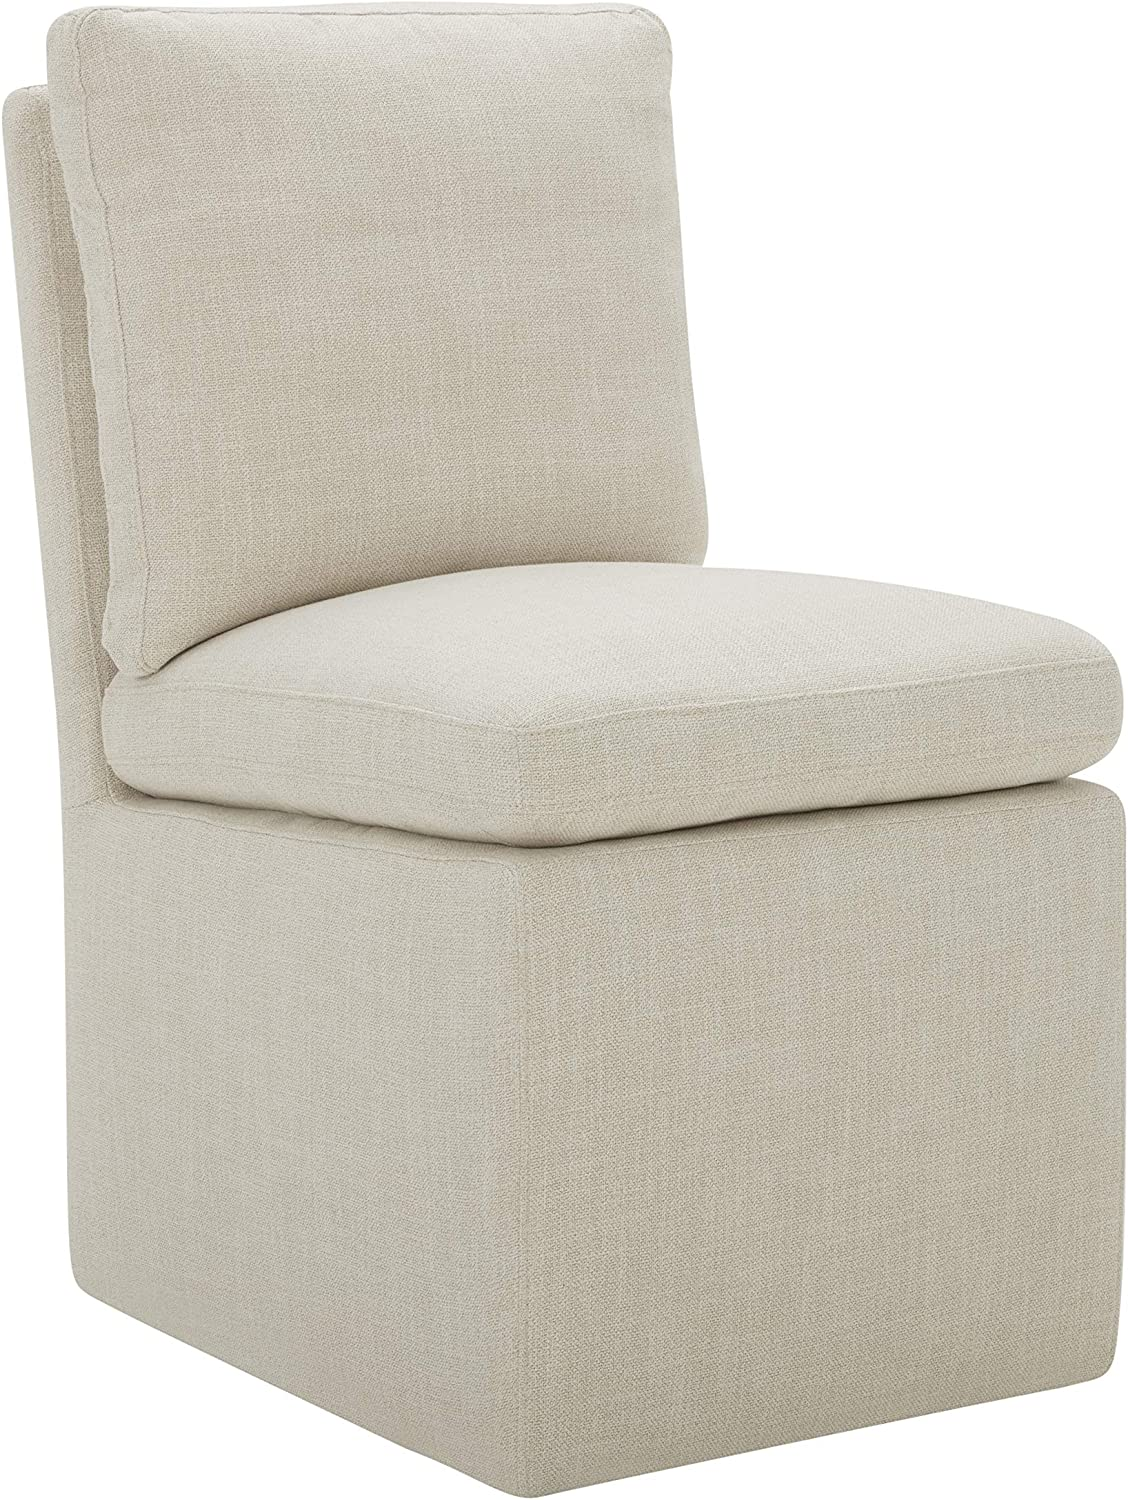 """Amazon Brand – Stone & Beam Vivianne Modern Upholstered Armless Dining Chair with Casters, 19.7""""W, Linen"""